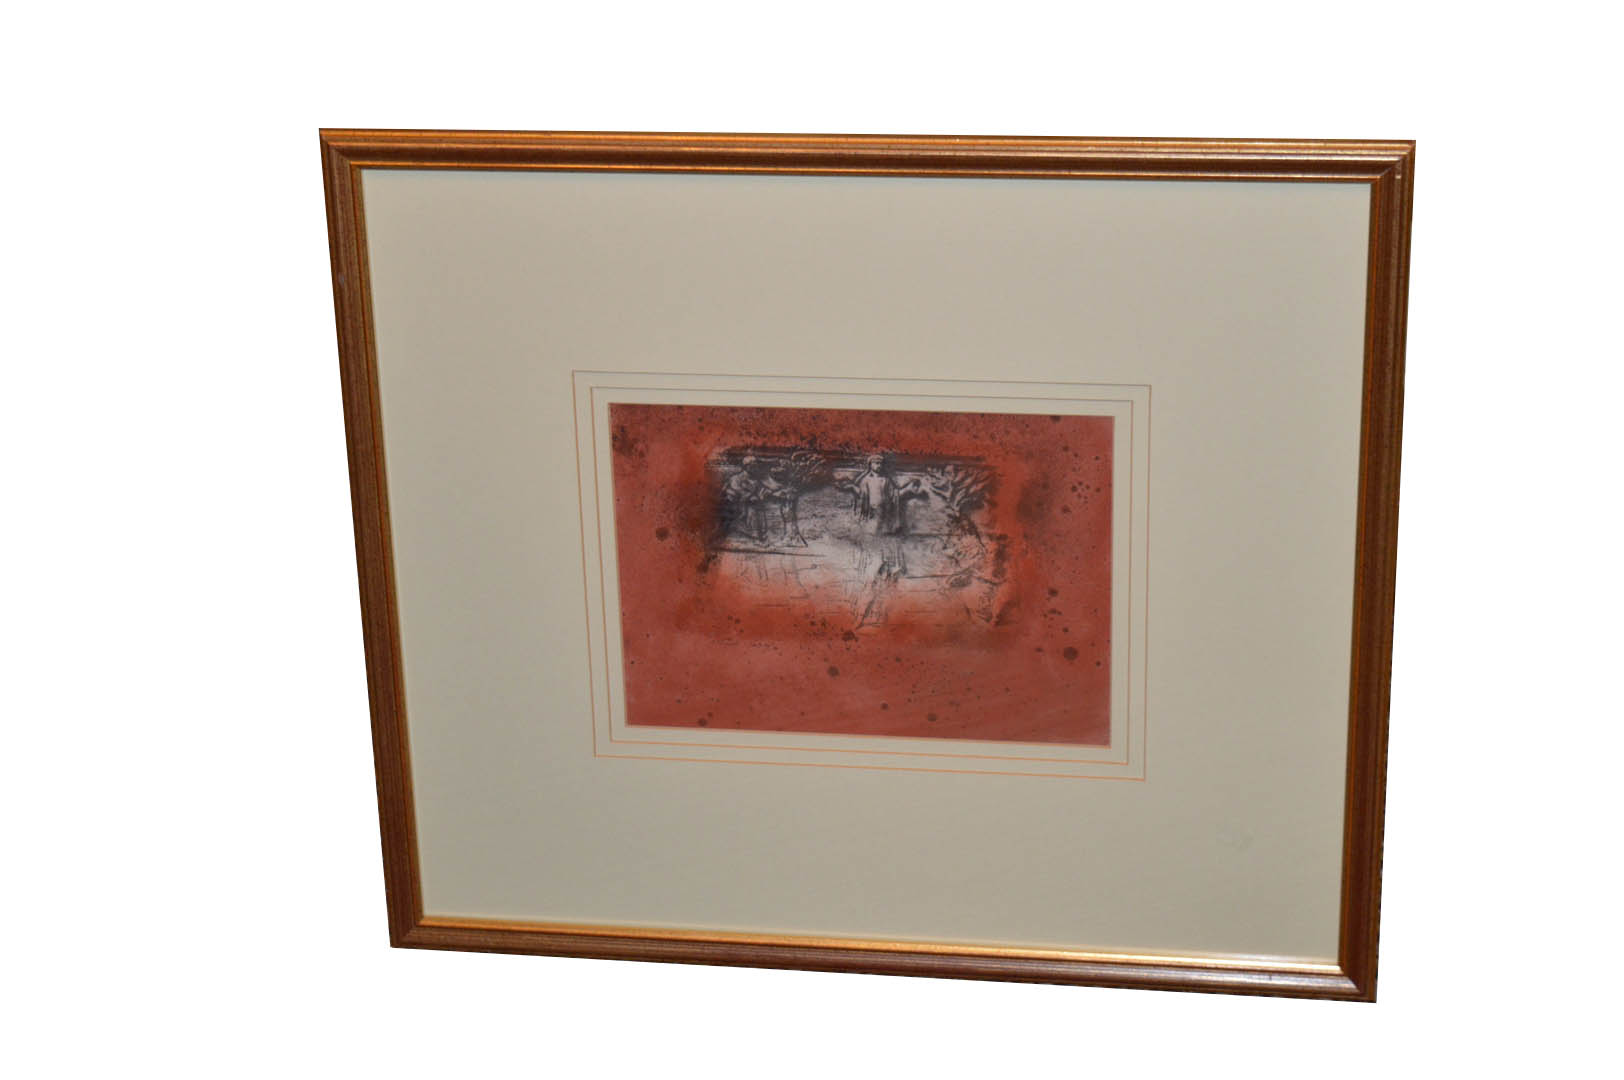 Lot 497 - A Mixed Media Painting 'Judith Among the Elders' - Ross Wilson